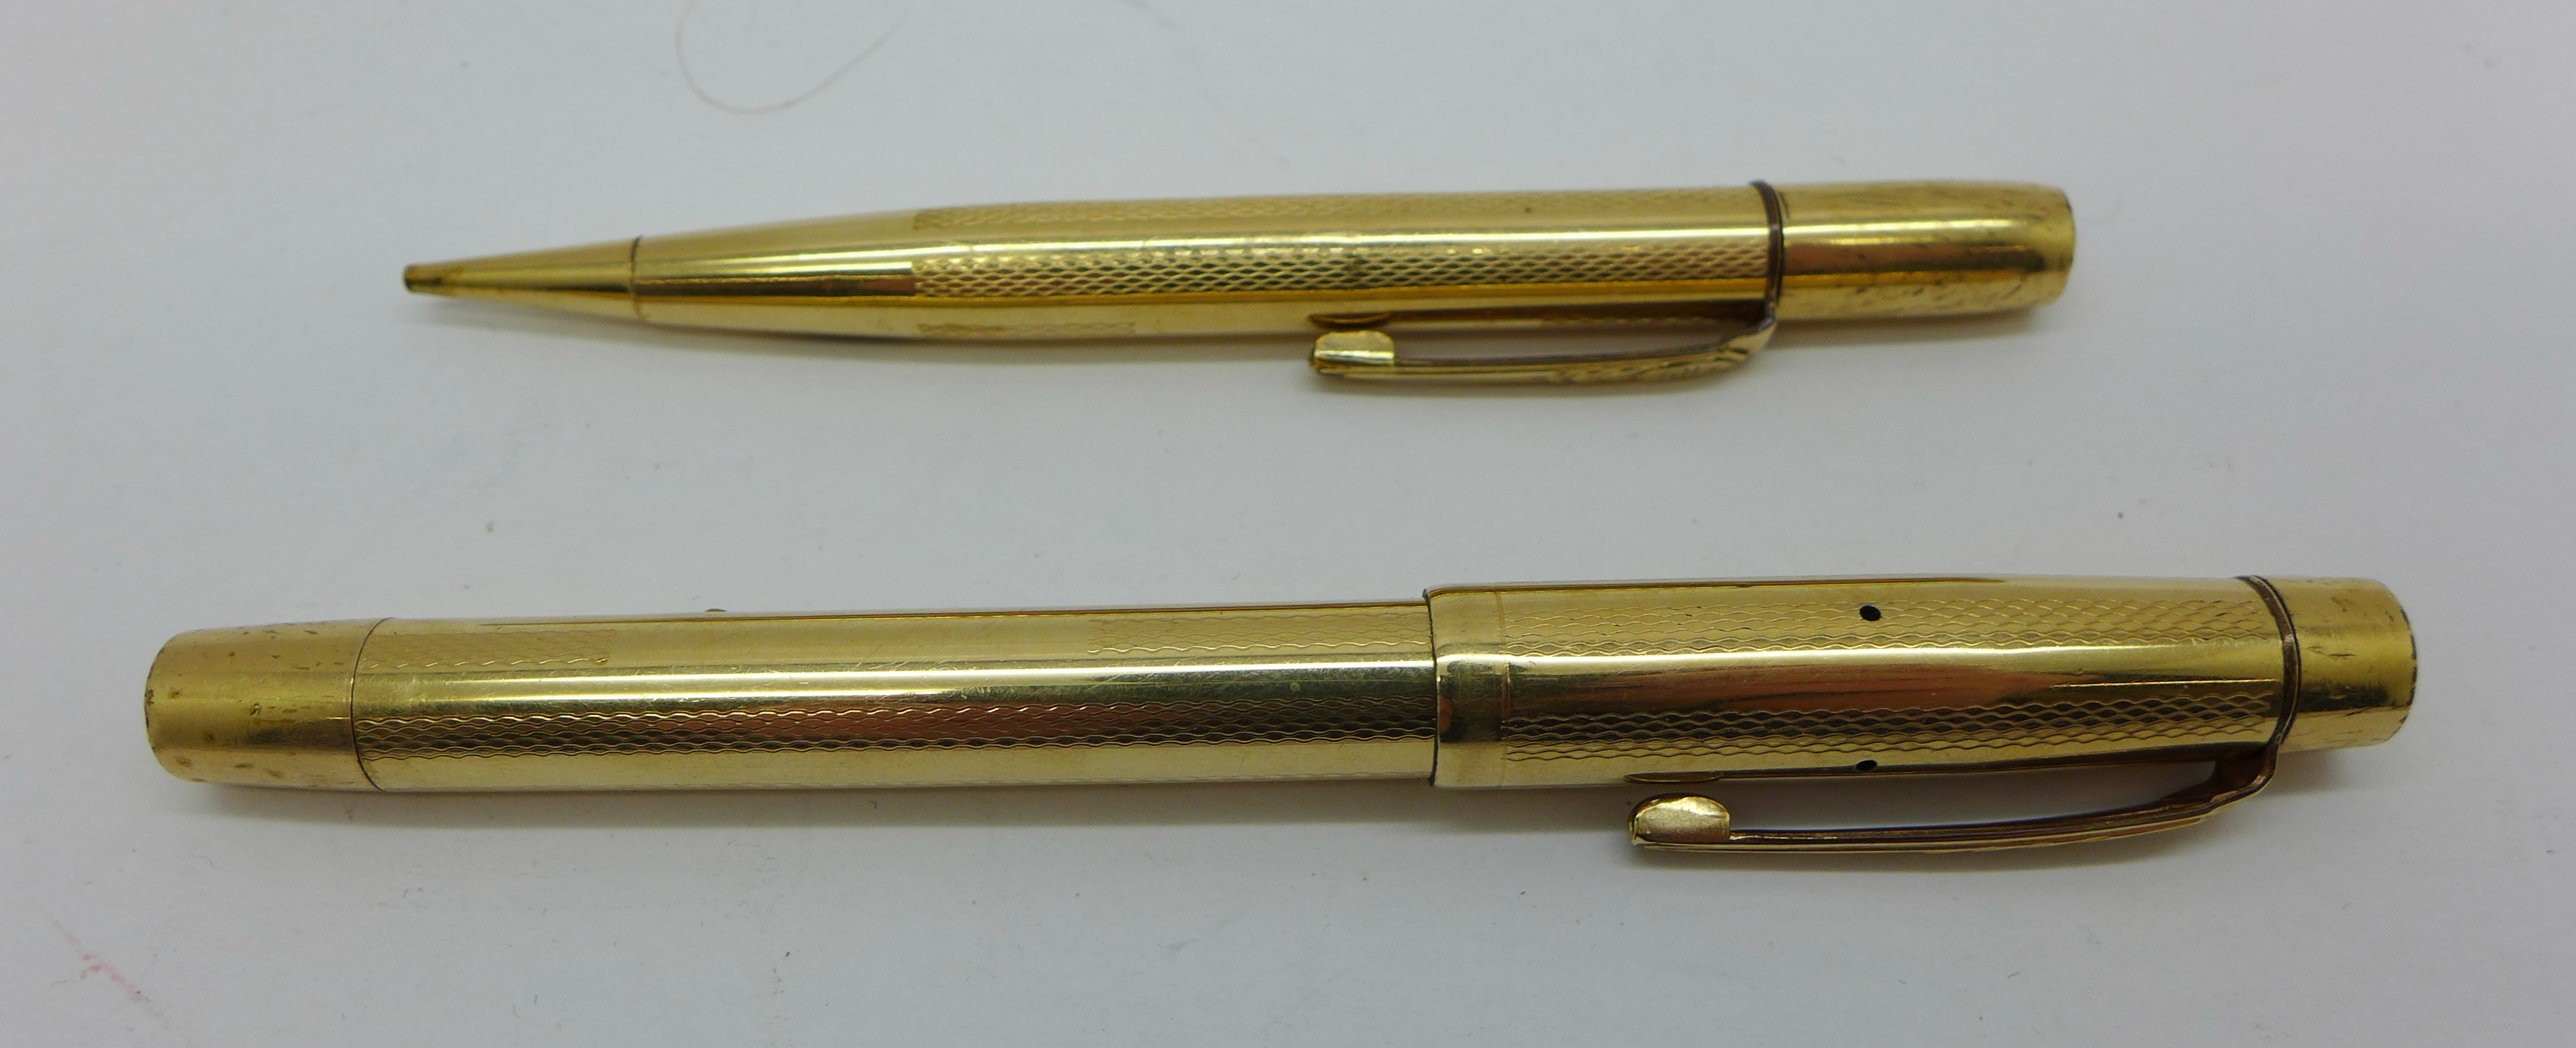 Lot 844 - A gold plated Onoto pen with 14ct gold nib and a matching pencil